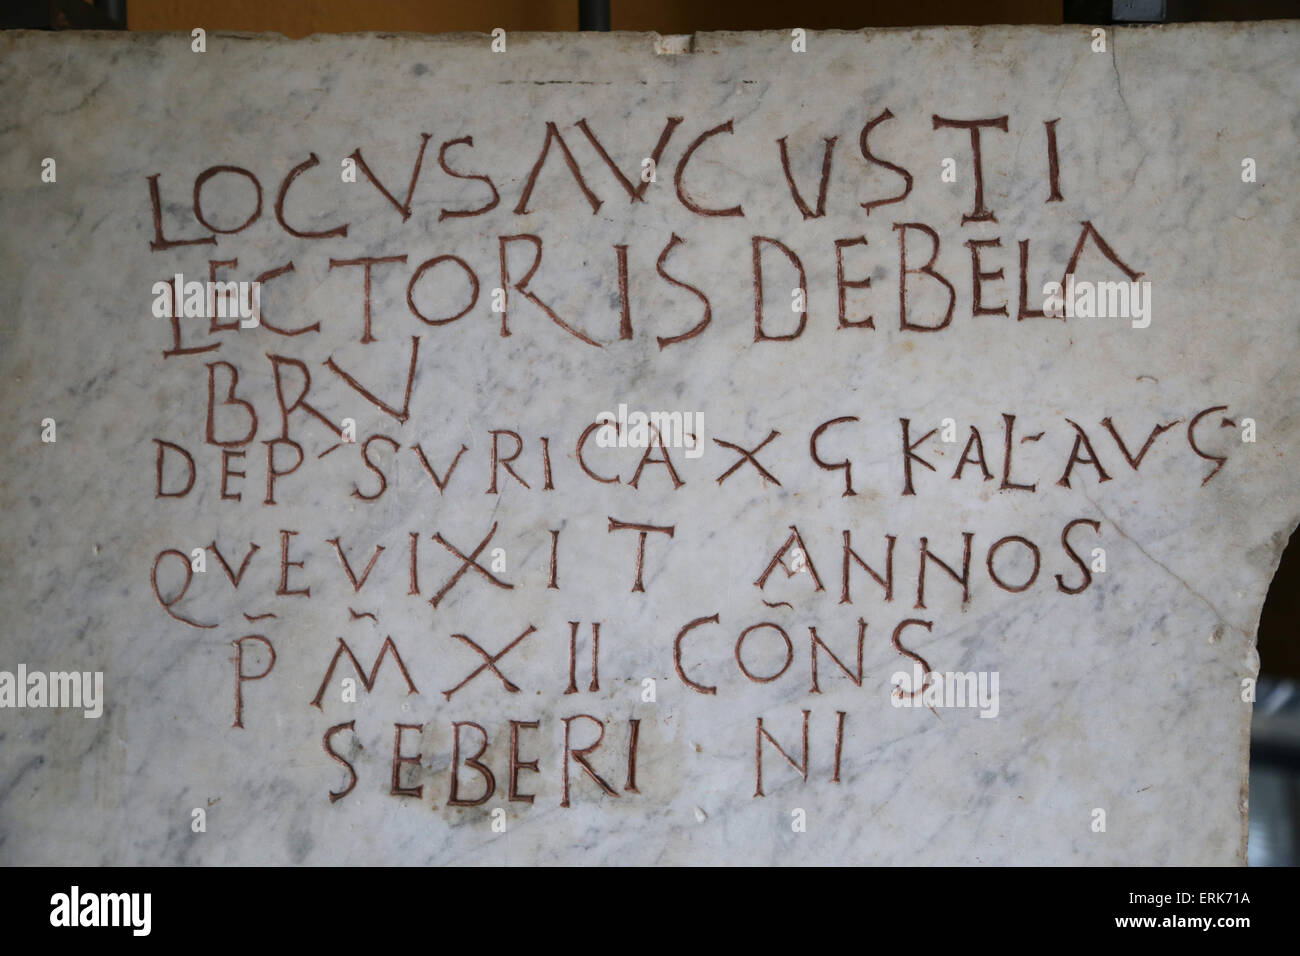 Roman tombstone. Early Christian. Epitaph. Latin inscription. Vatican Museums. 3rd-4th century. - Stock Image